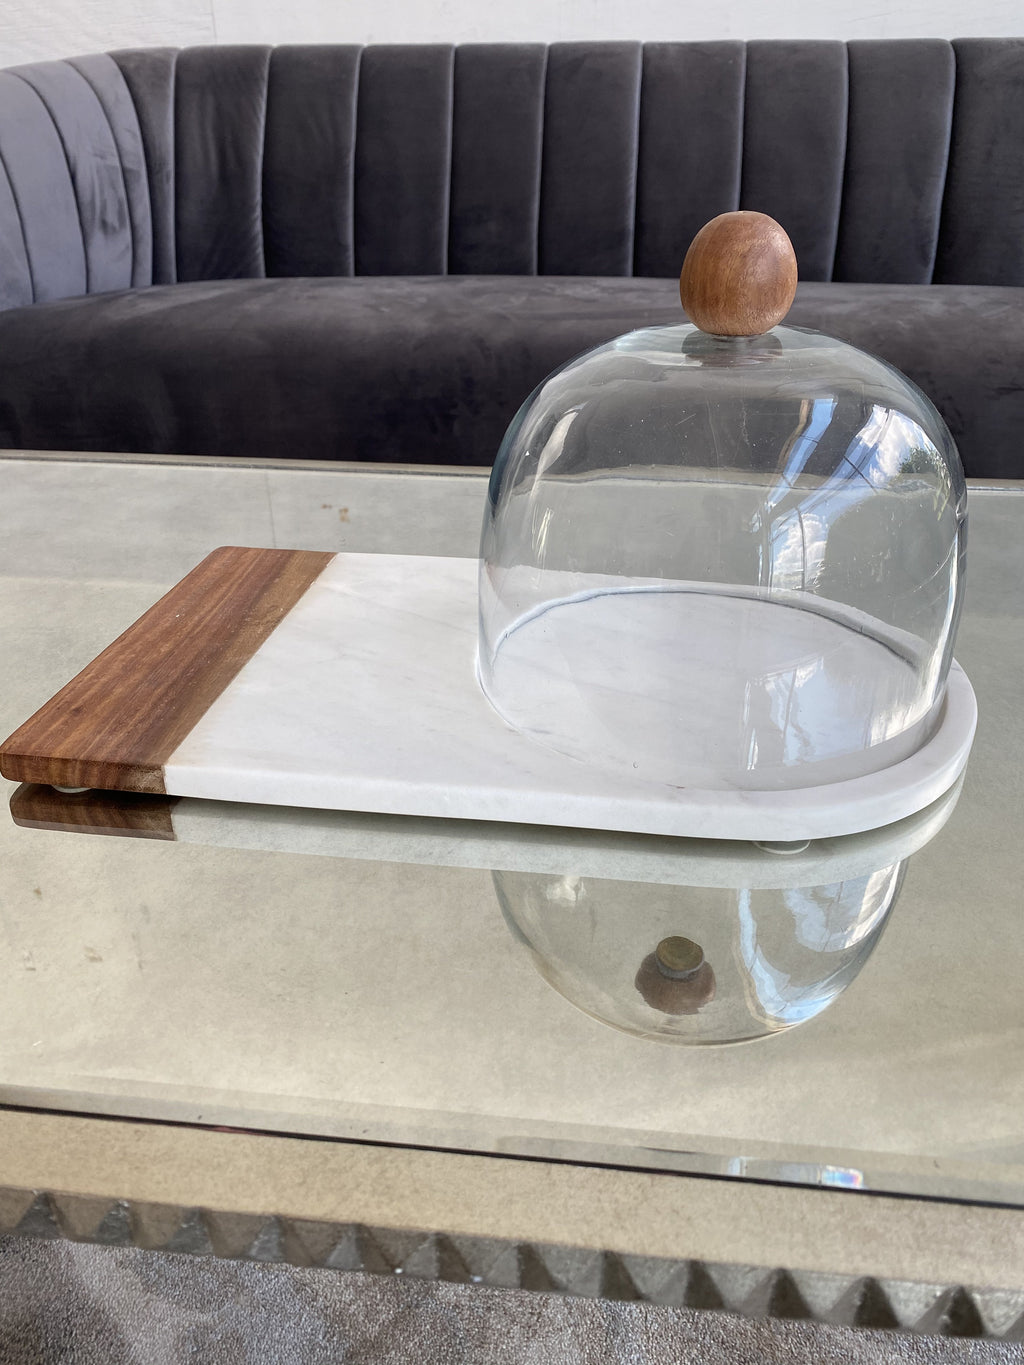 Marble and Wood Cake Plate with Glass Dome-Inspire Me! Home Decor